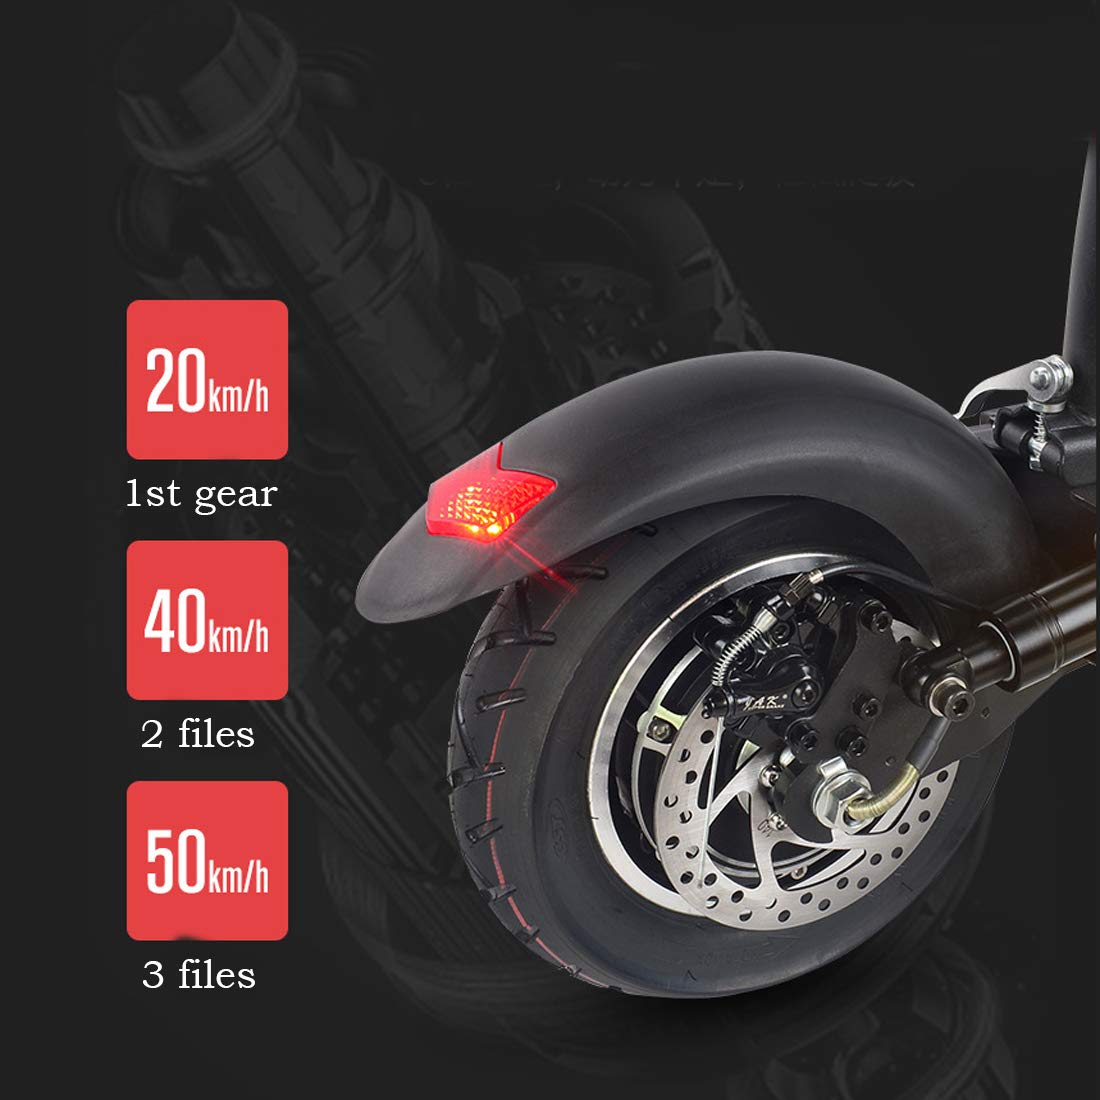 Battery 36V//400W with Seat 40~50km 10-inch Two-Wheeled Adult Folding Electric Bicycle with LED Lights Unisex Sports Scooter Electric Scooter